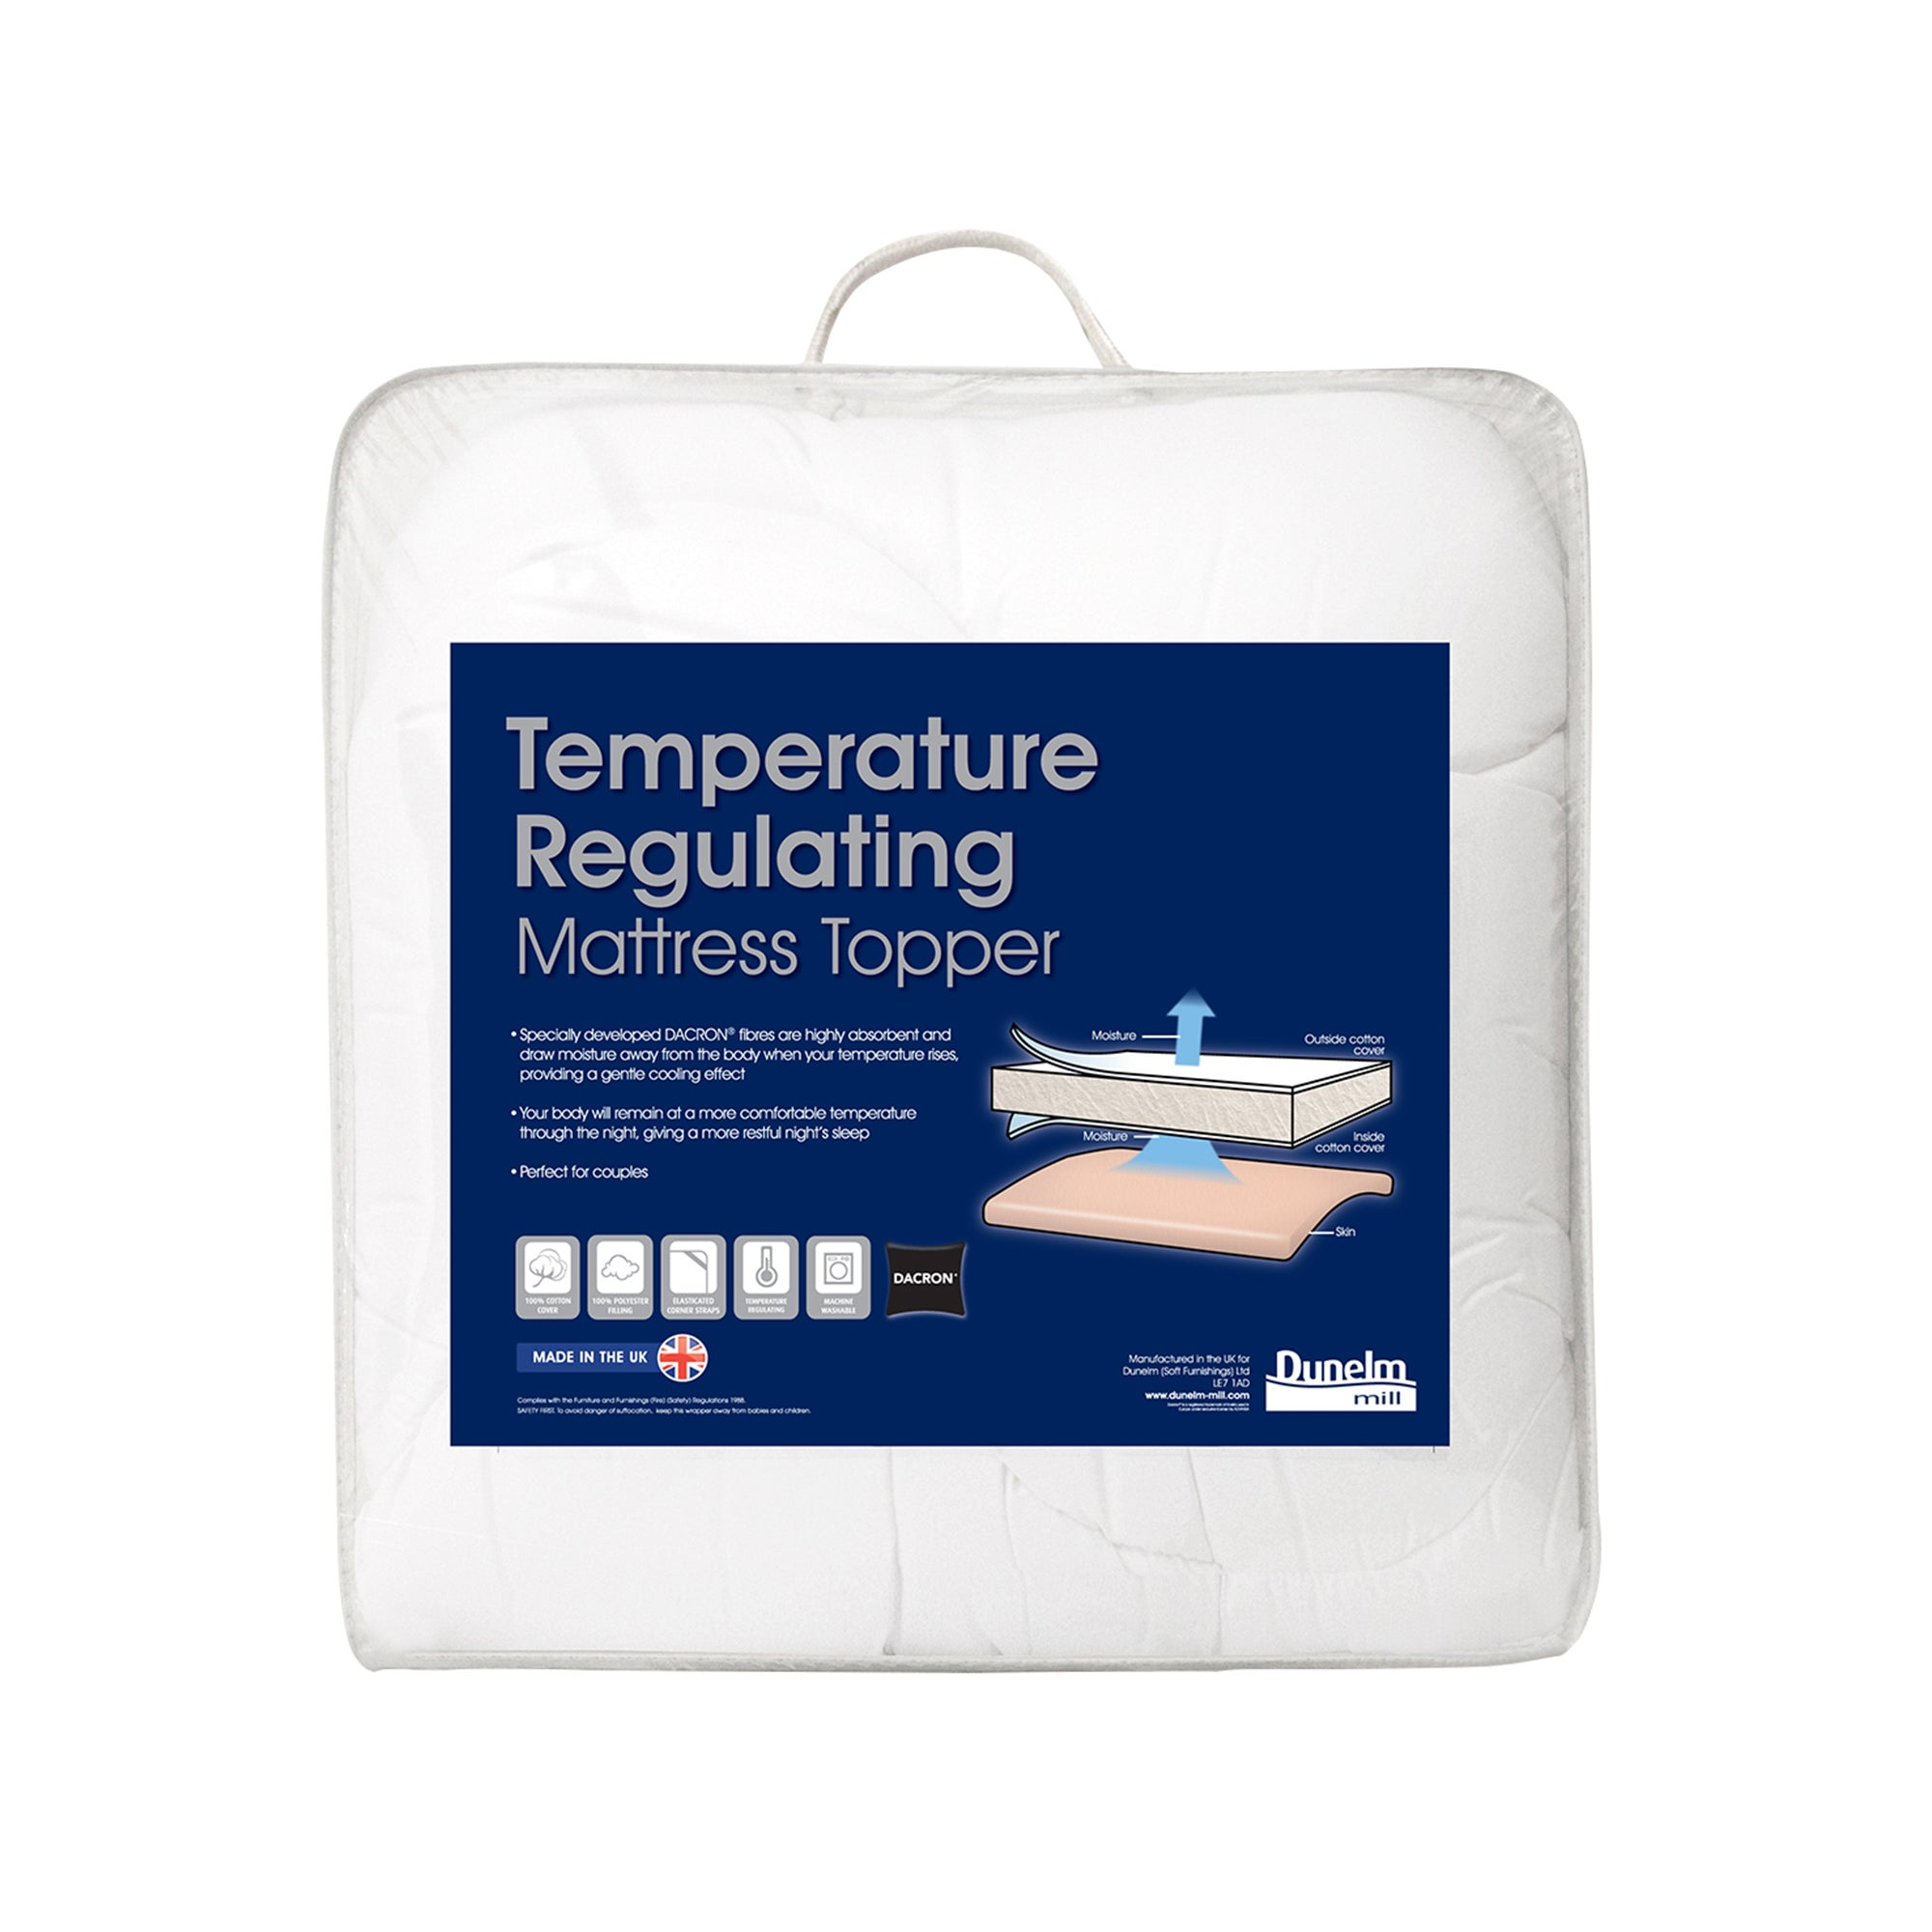 Temperature Regulating Mattress Topper